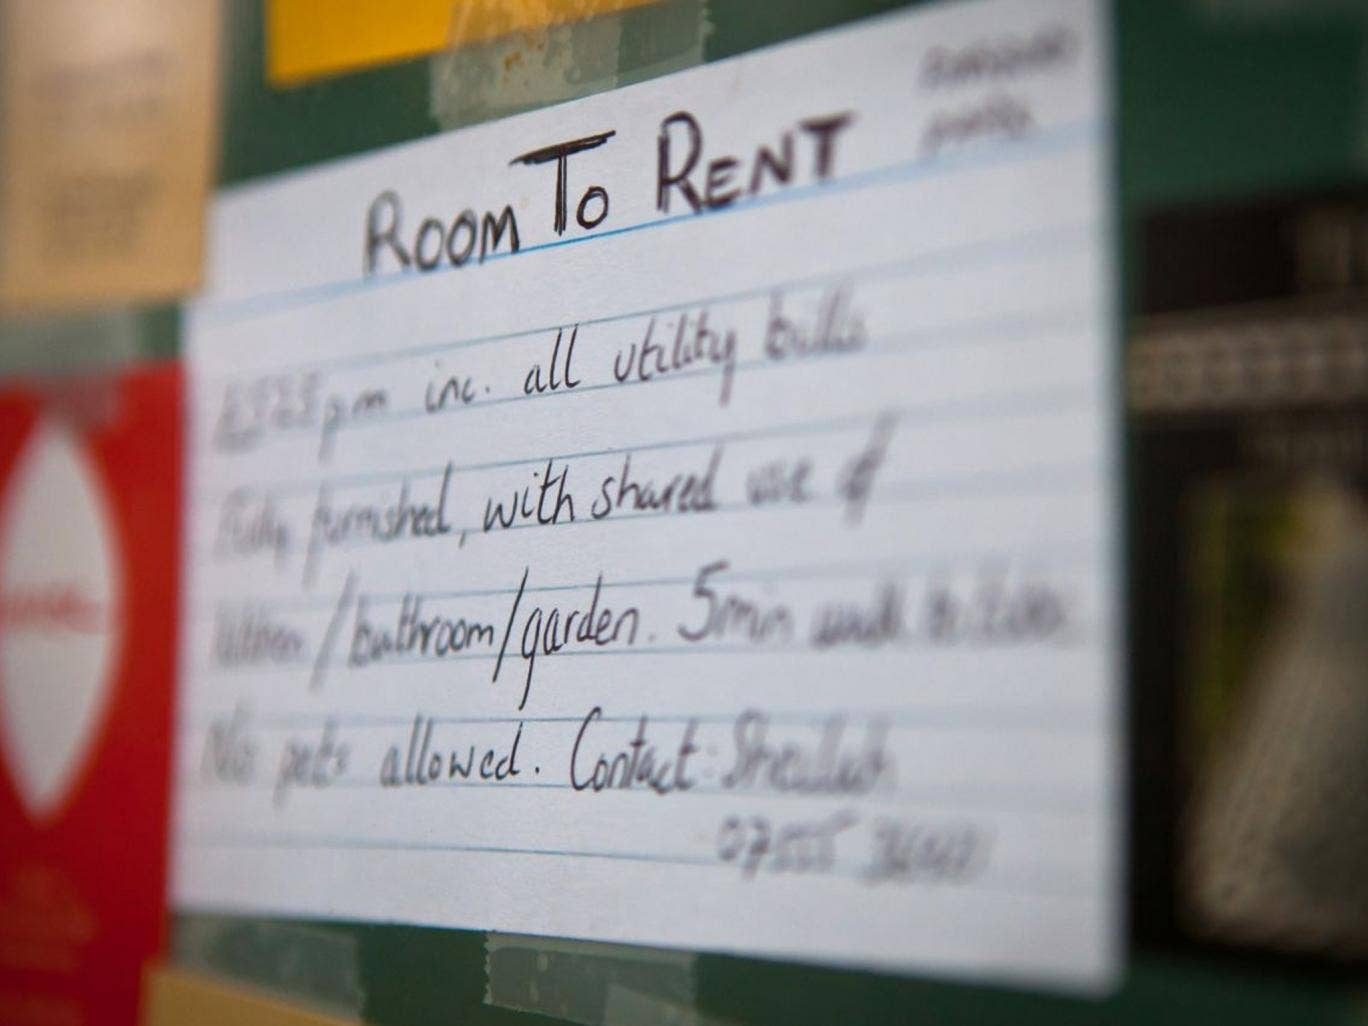 You can earn up to £4,250 a year tax free by renting out a spare room